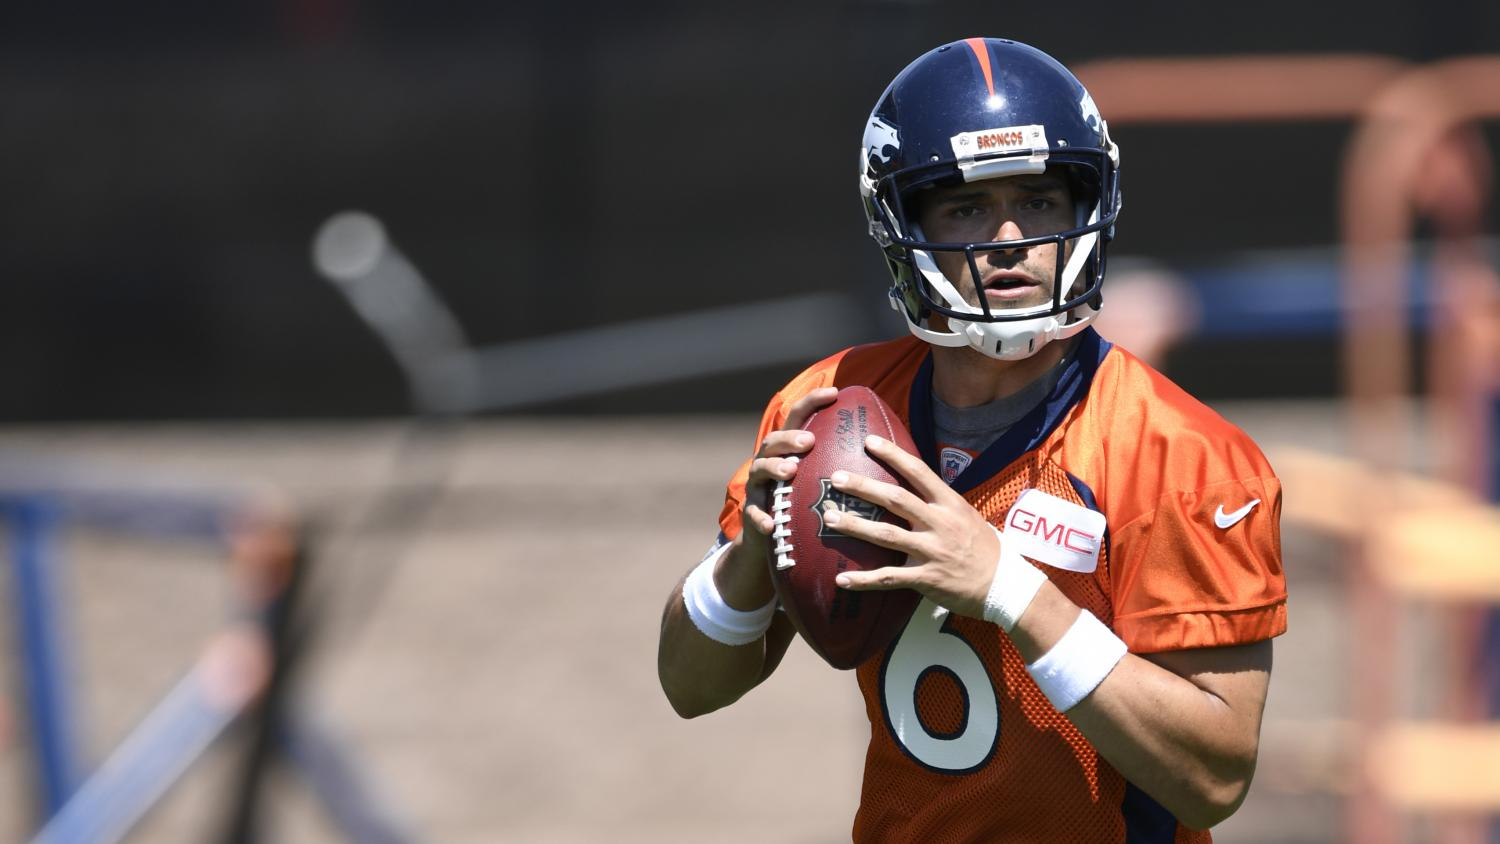 Nfl-news-rumors-mark-sanchez-minicamp